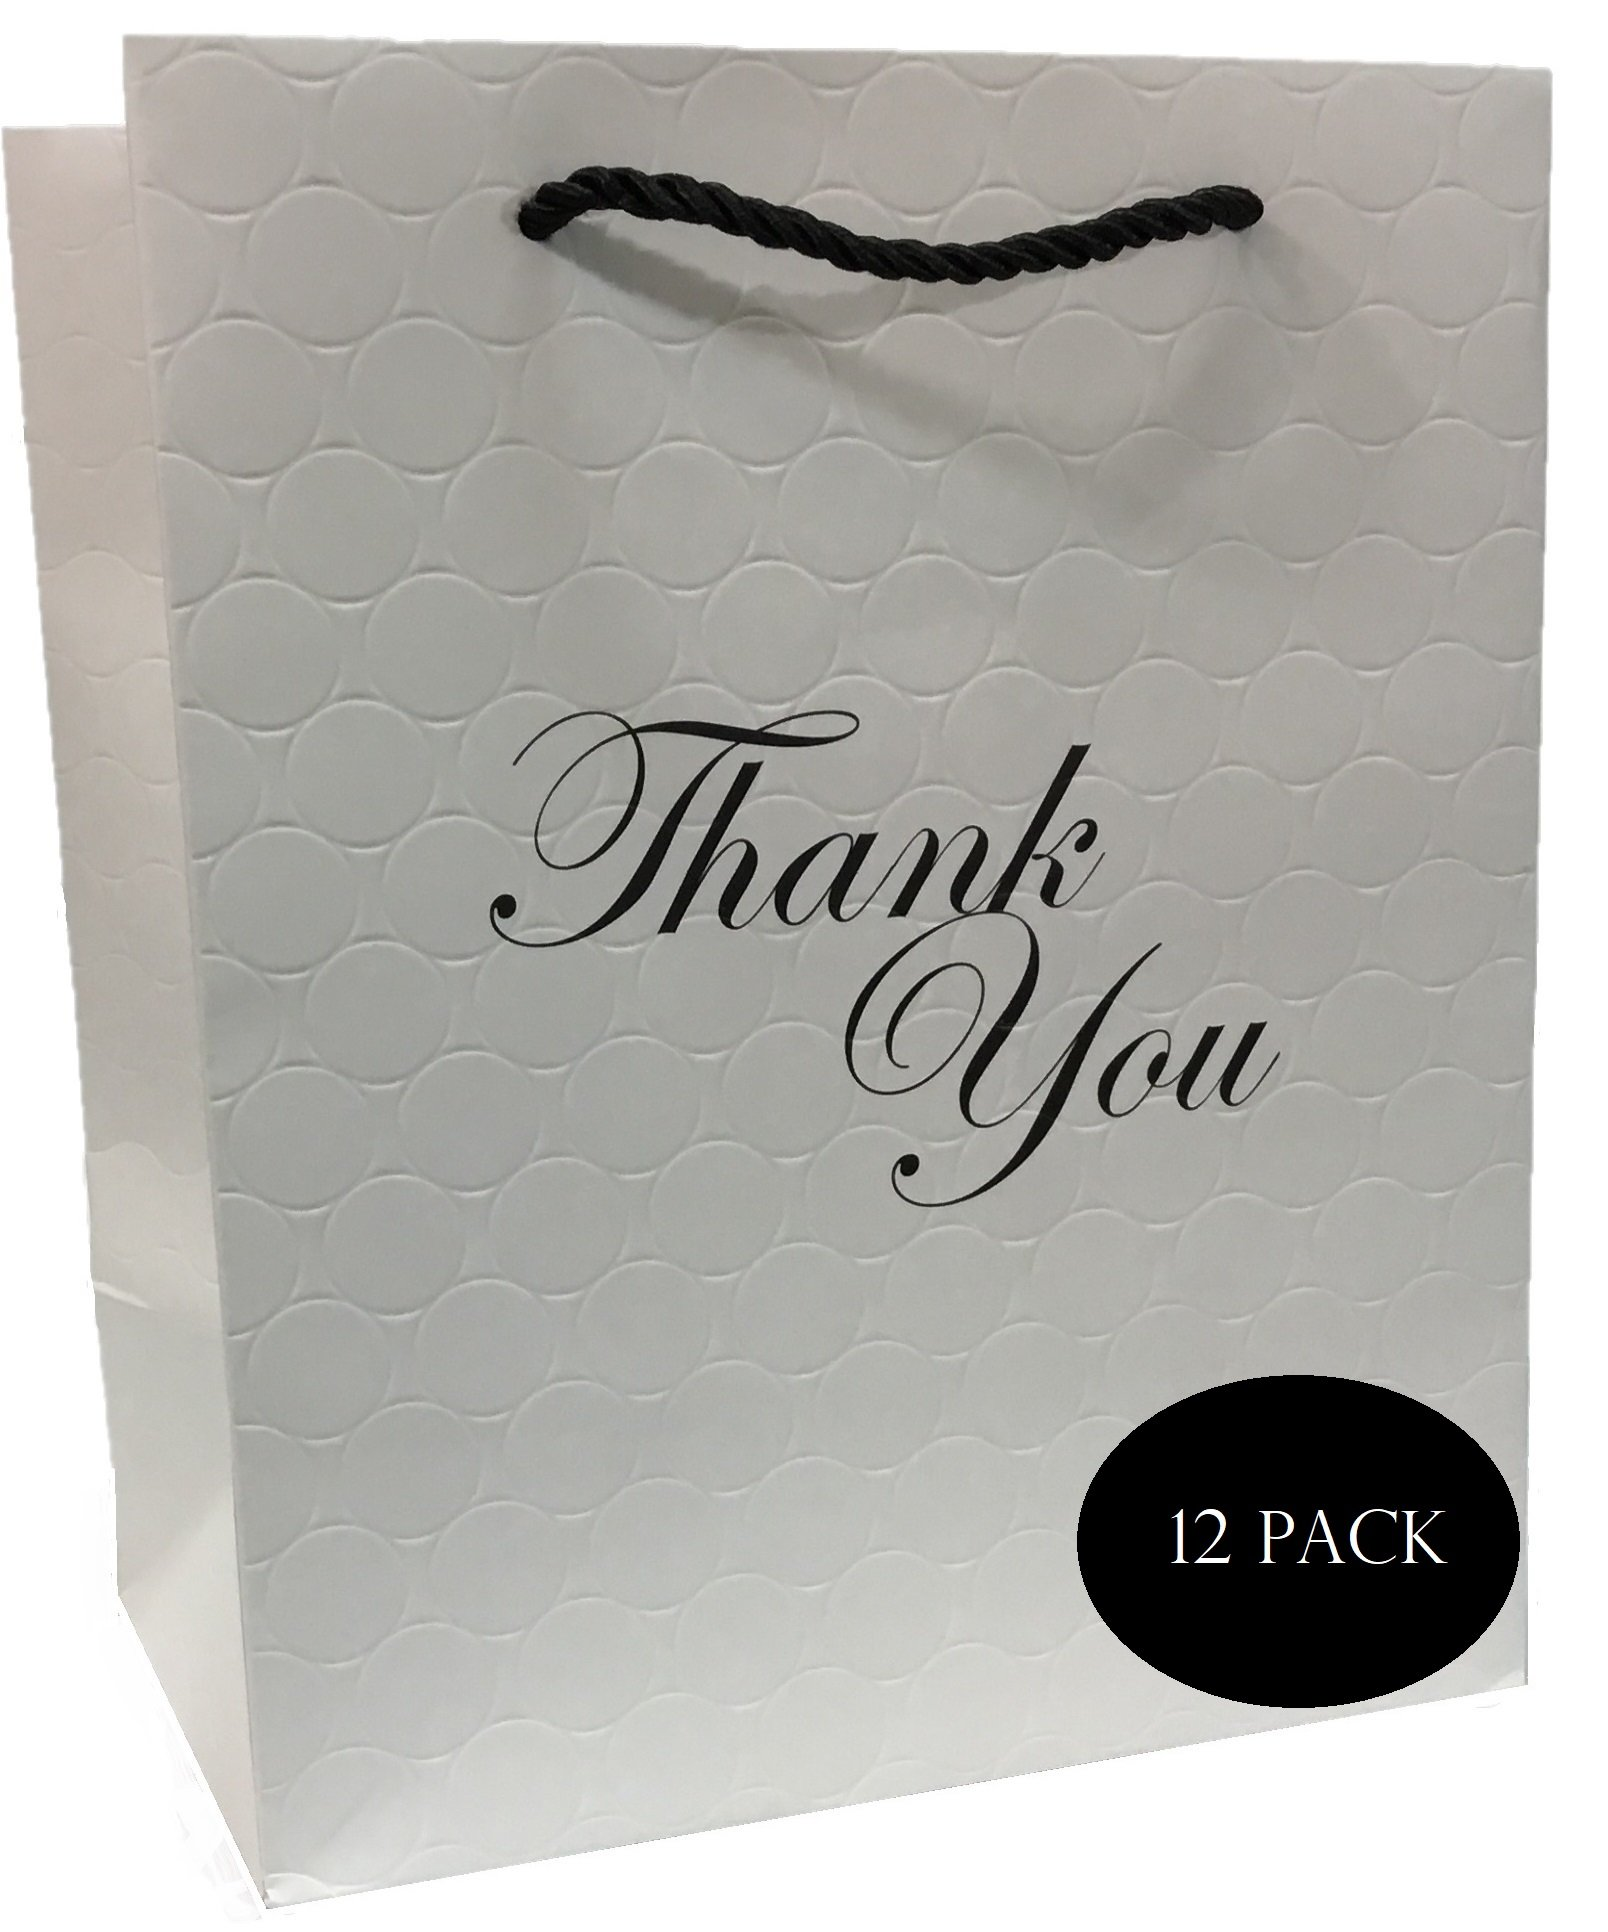 Thank You Gift Bag - Paper Shopping Bag 8 x 10 x 5 White Matte Elegant Euro Tote Heavy Duty 250 g Art Paper - Retail Merchandise/Boutique -Embossed 12 Pack- Modeeni Packaging (8 x 10, White)